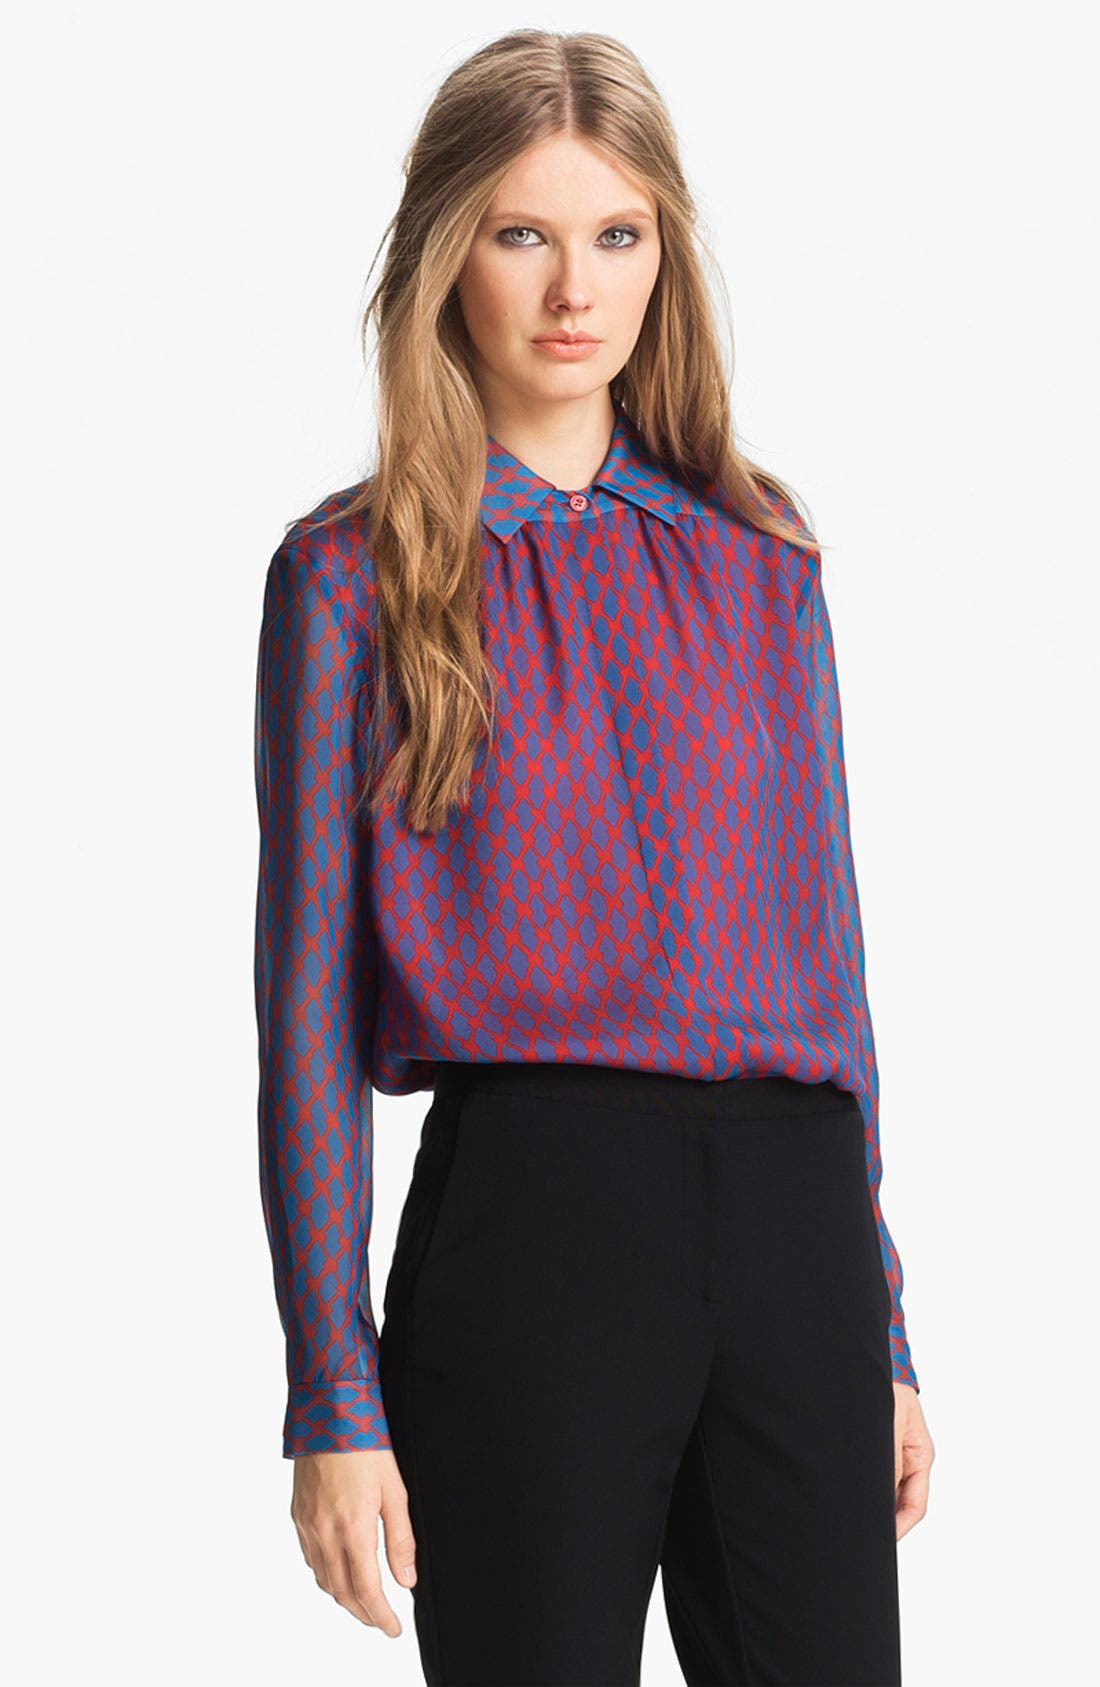 Alternate Image 1 Selected - Miss Wu Geometric Print Chiffon Blouse (Nordstrom Exclusive)